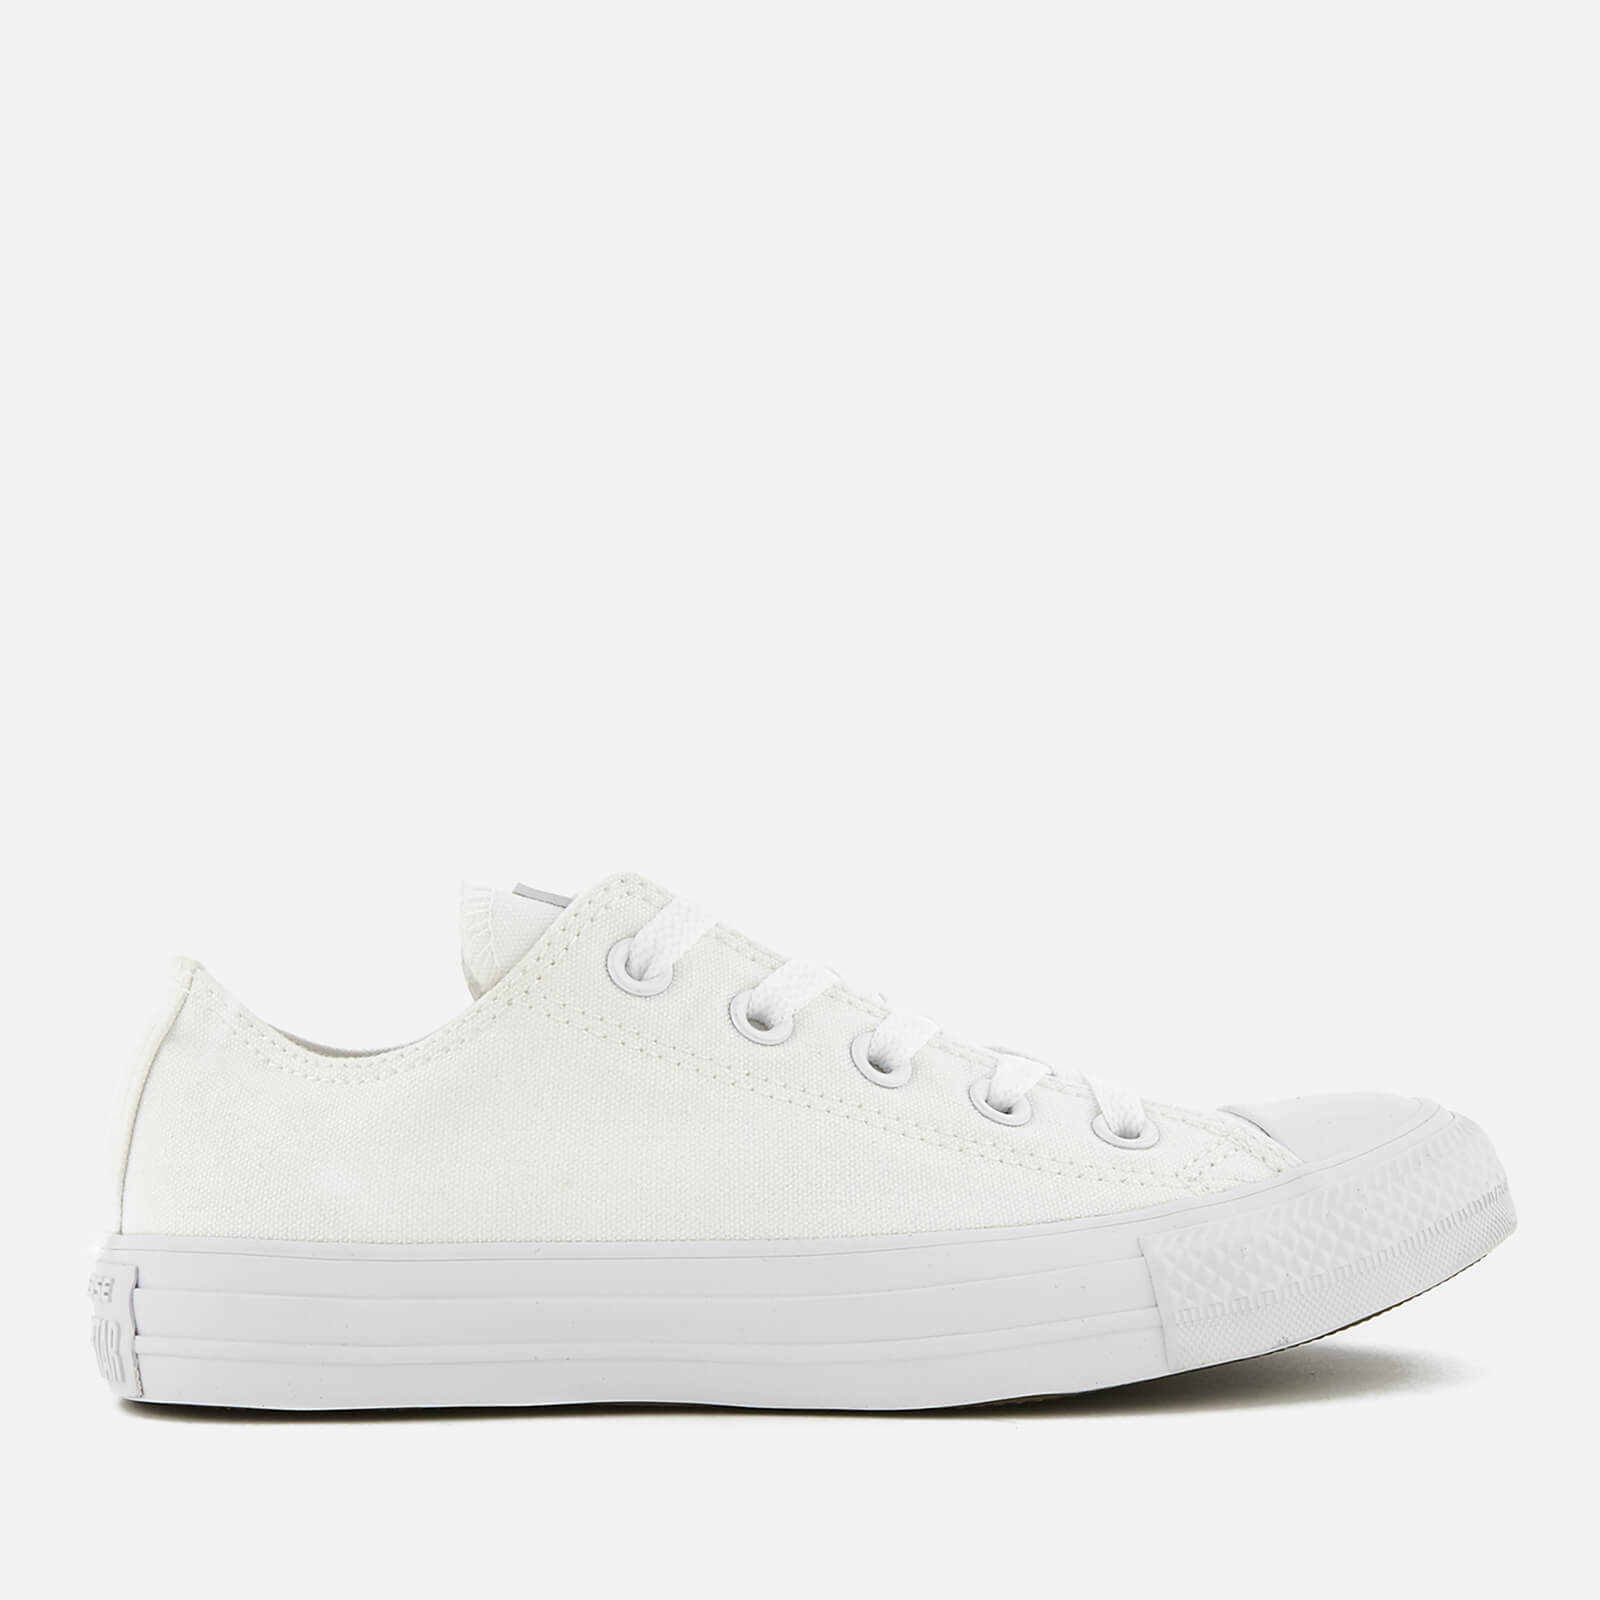 851dc872eaa Converse Chuck Taylor All Star Ox Canvas Trainers - White Monochrome Mens  Footwear